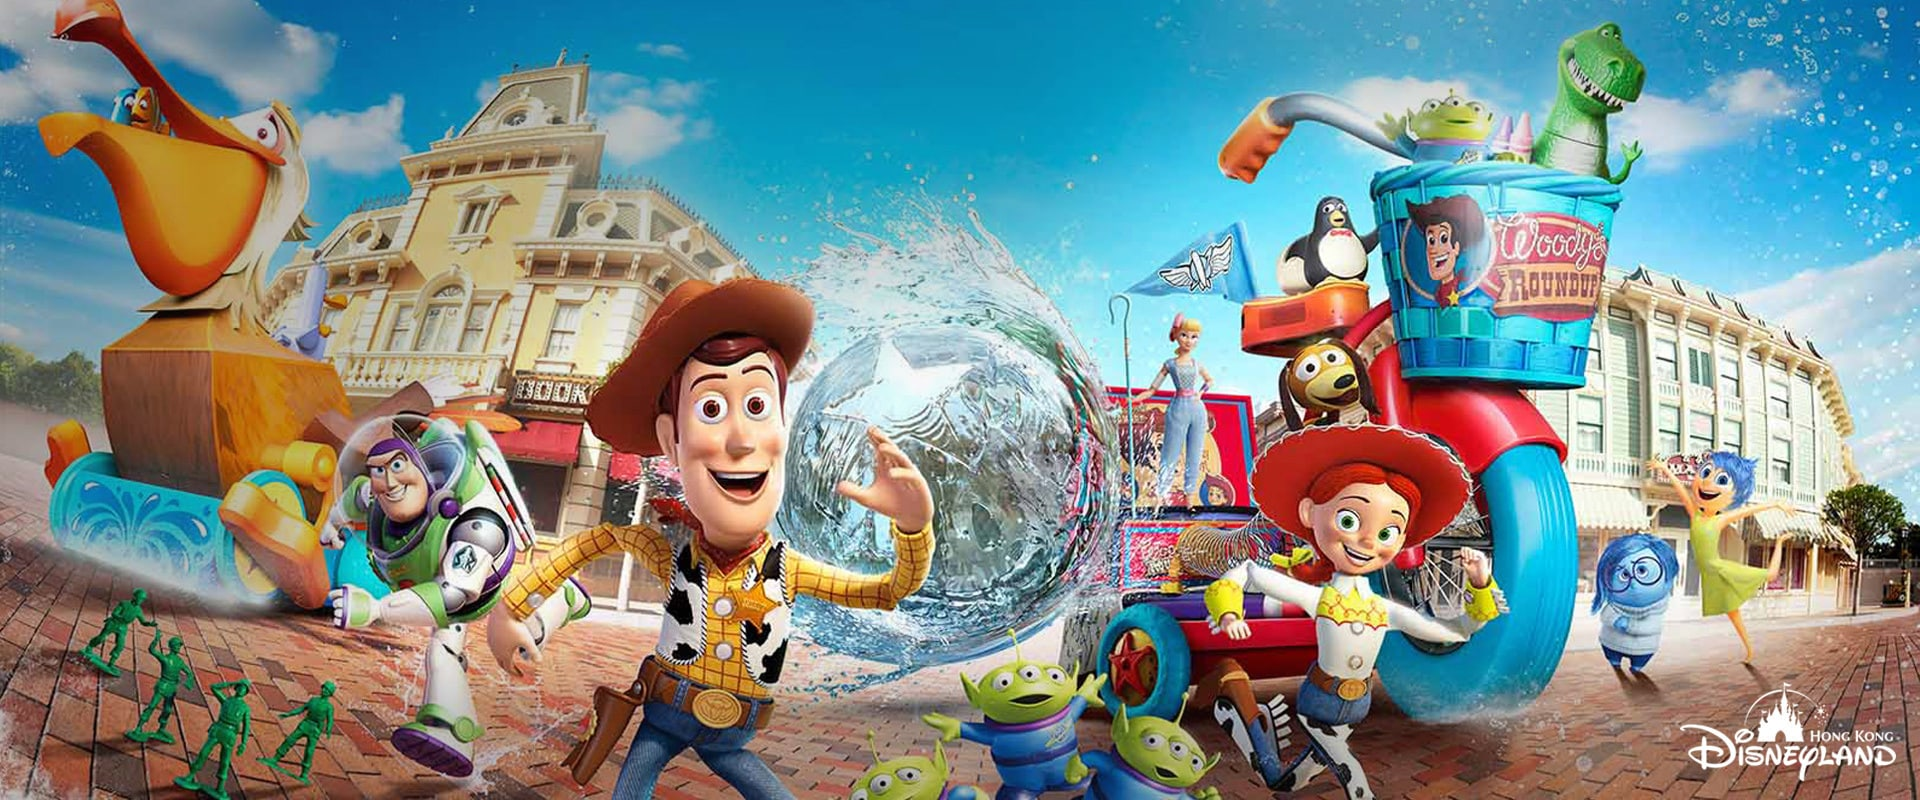 Toy Story & Pixar Pals Summer Splash